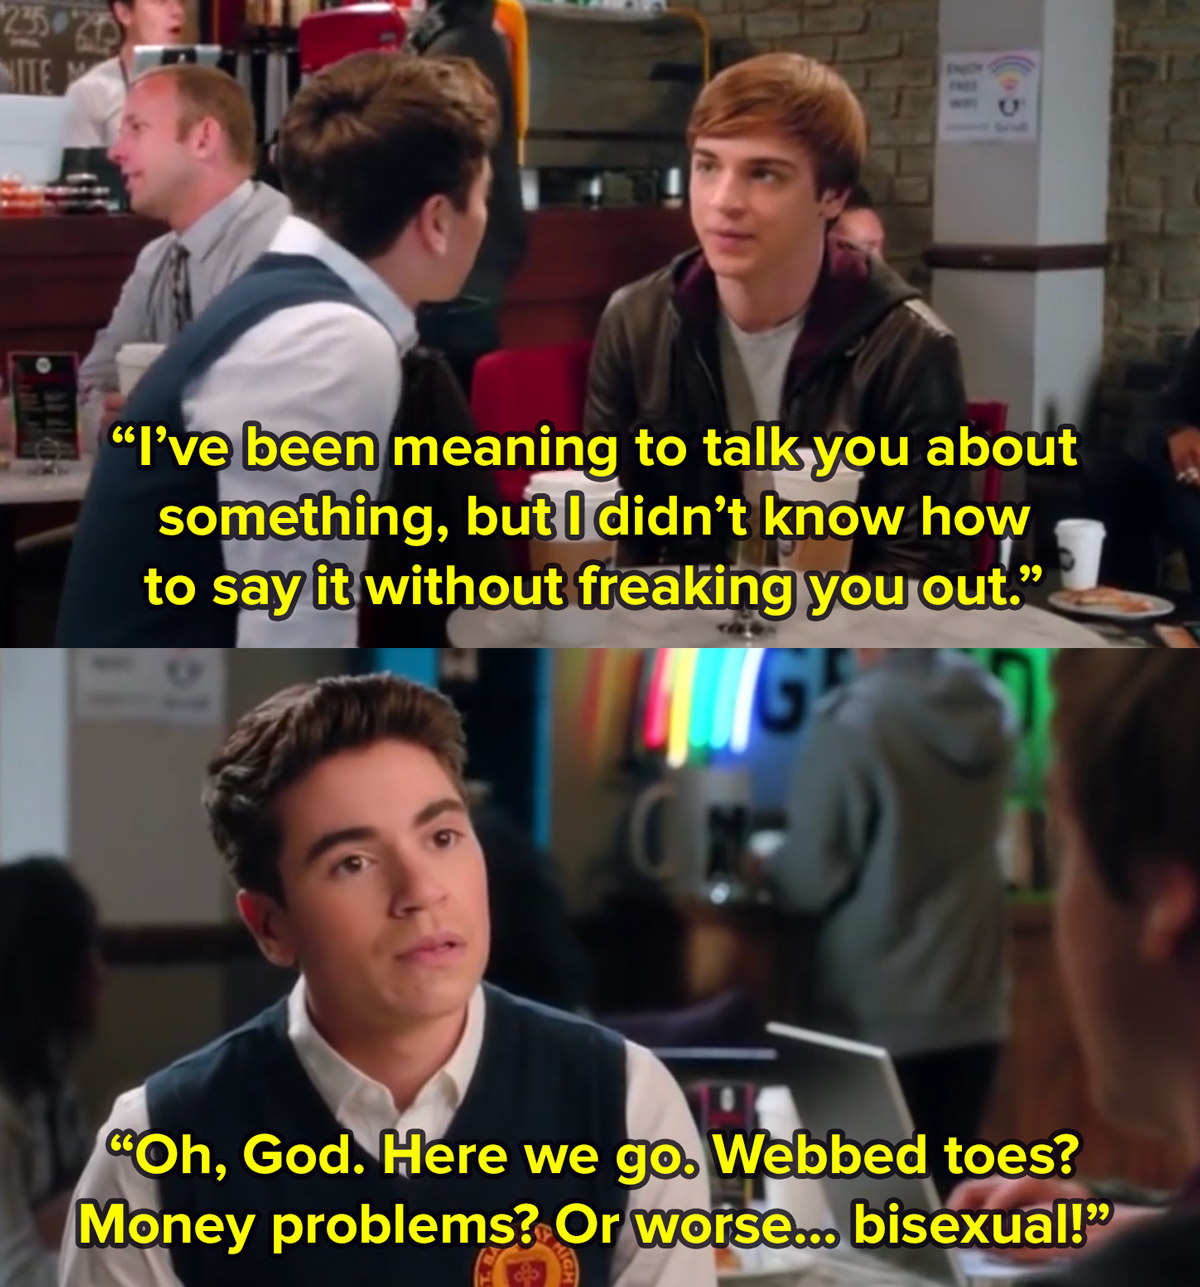 Kenny from The Real O Neals, who is played by Noah Galvin, sits with his boyfriend in a cafe as his boyfriend I didn't know how to tell you this. In another image, Kenny thinks to himself here we go, money problems, webbed toes, or worse bisexual